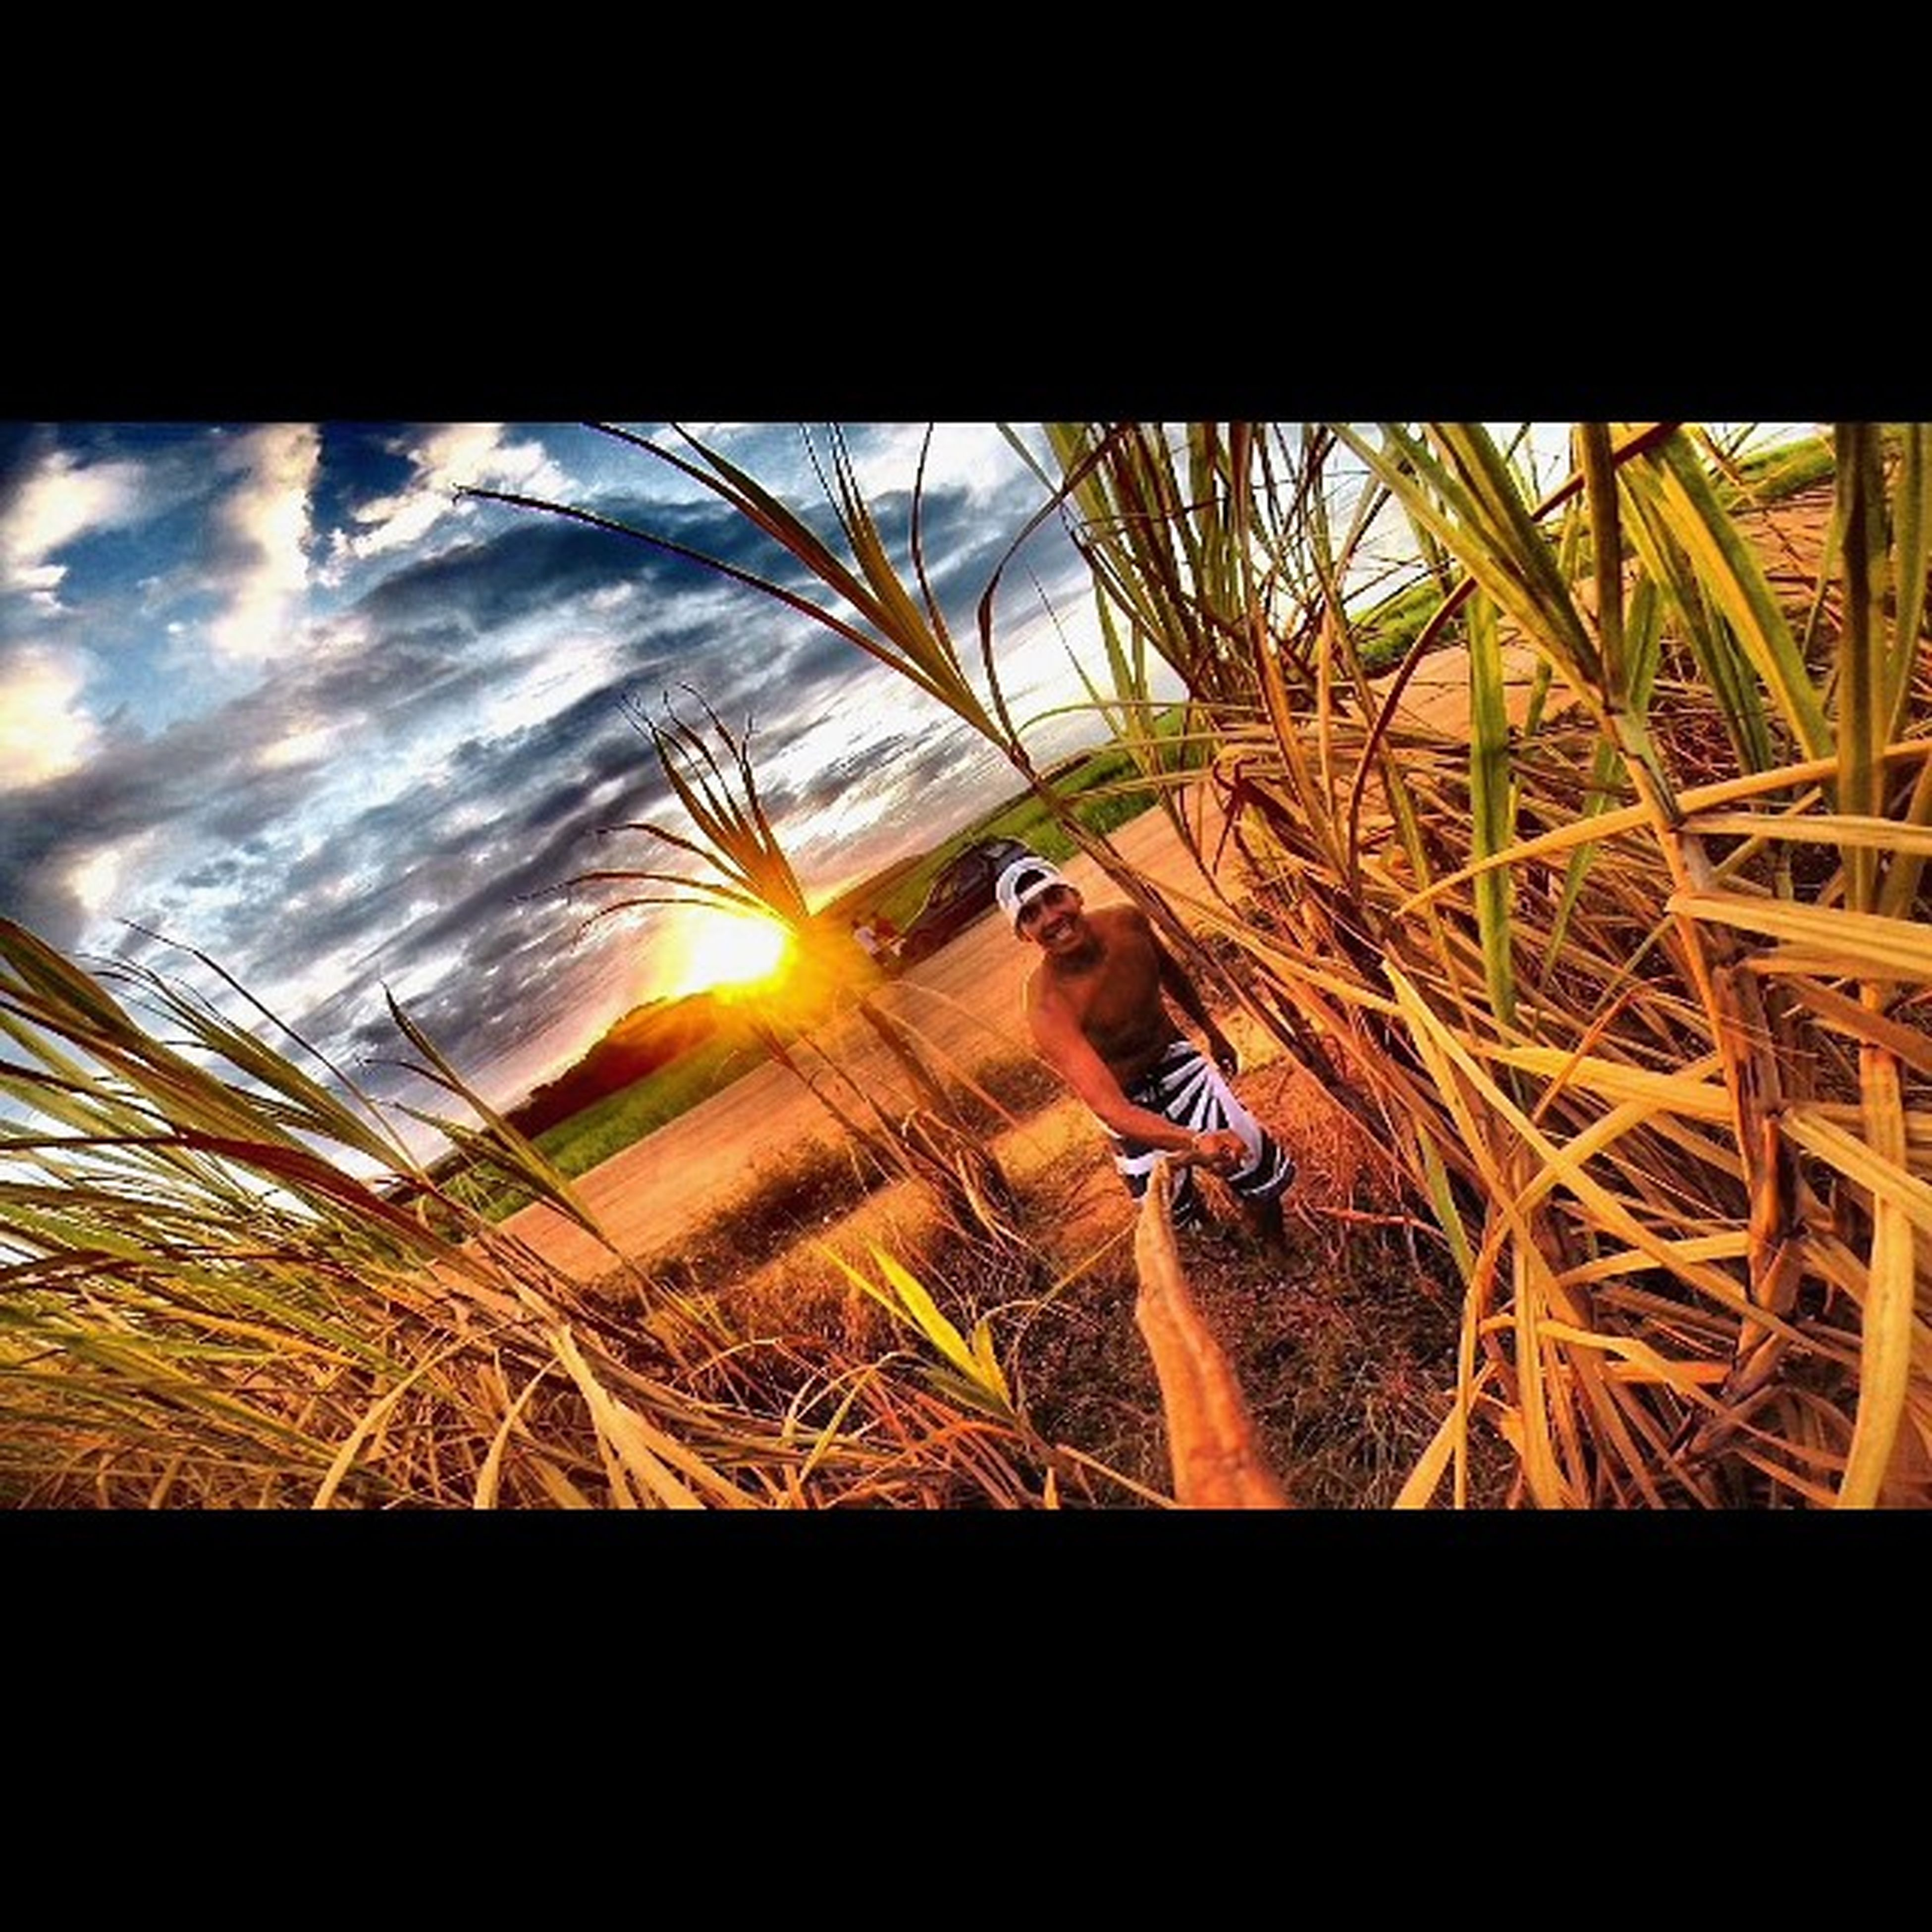 leisure activity, lifestyles, sunset, bicycle, transfer print, land vehicle, sunlight, auto post production filter, sun, transportation, field, mode of transport, sky, holding, men, lens flare, young adult, outdoors